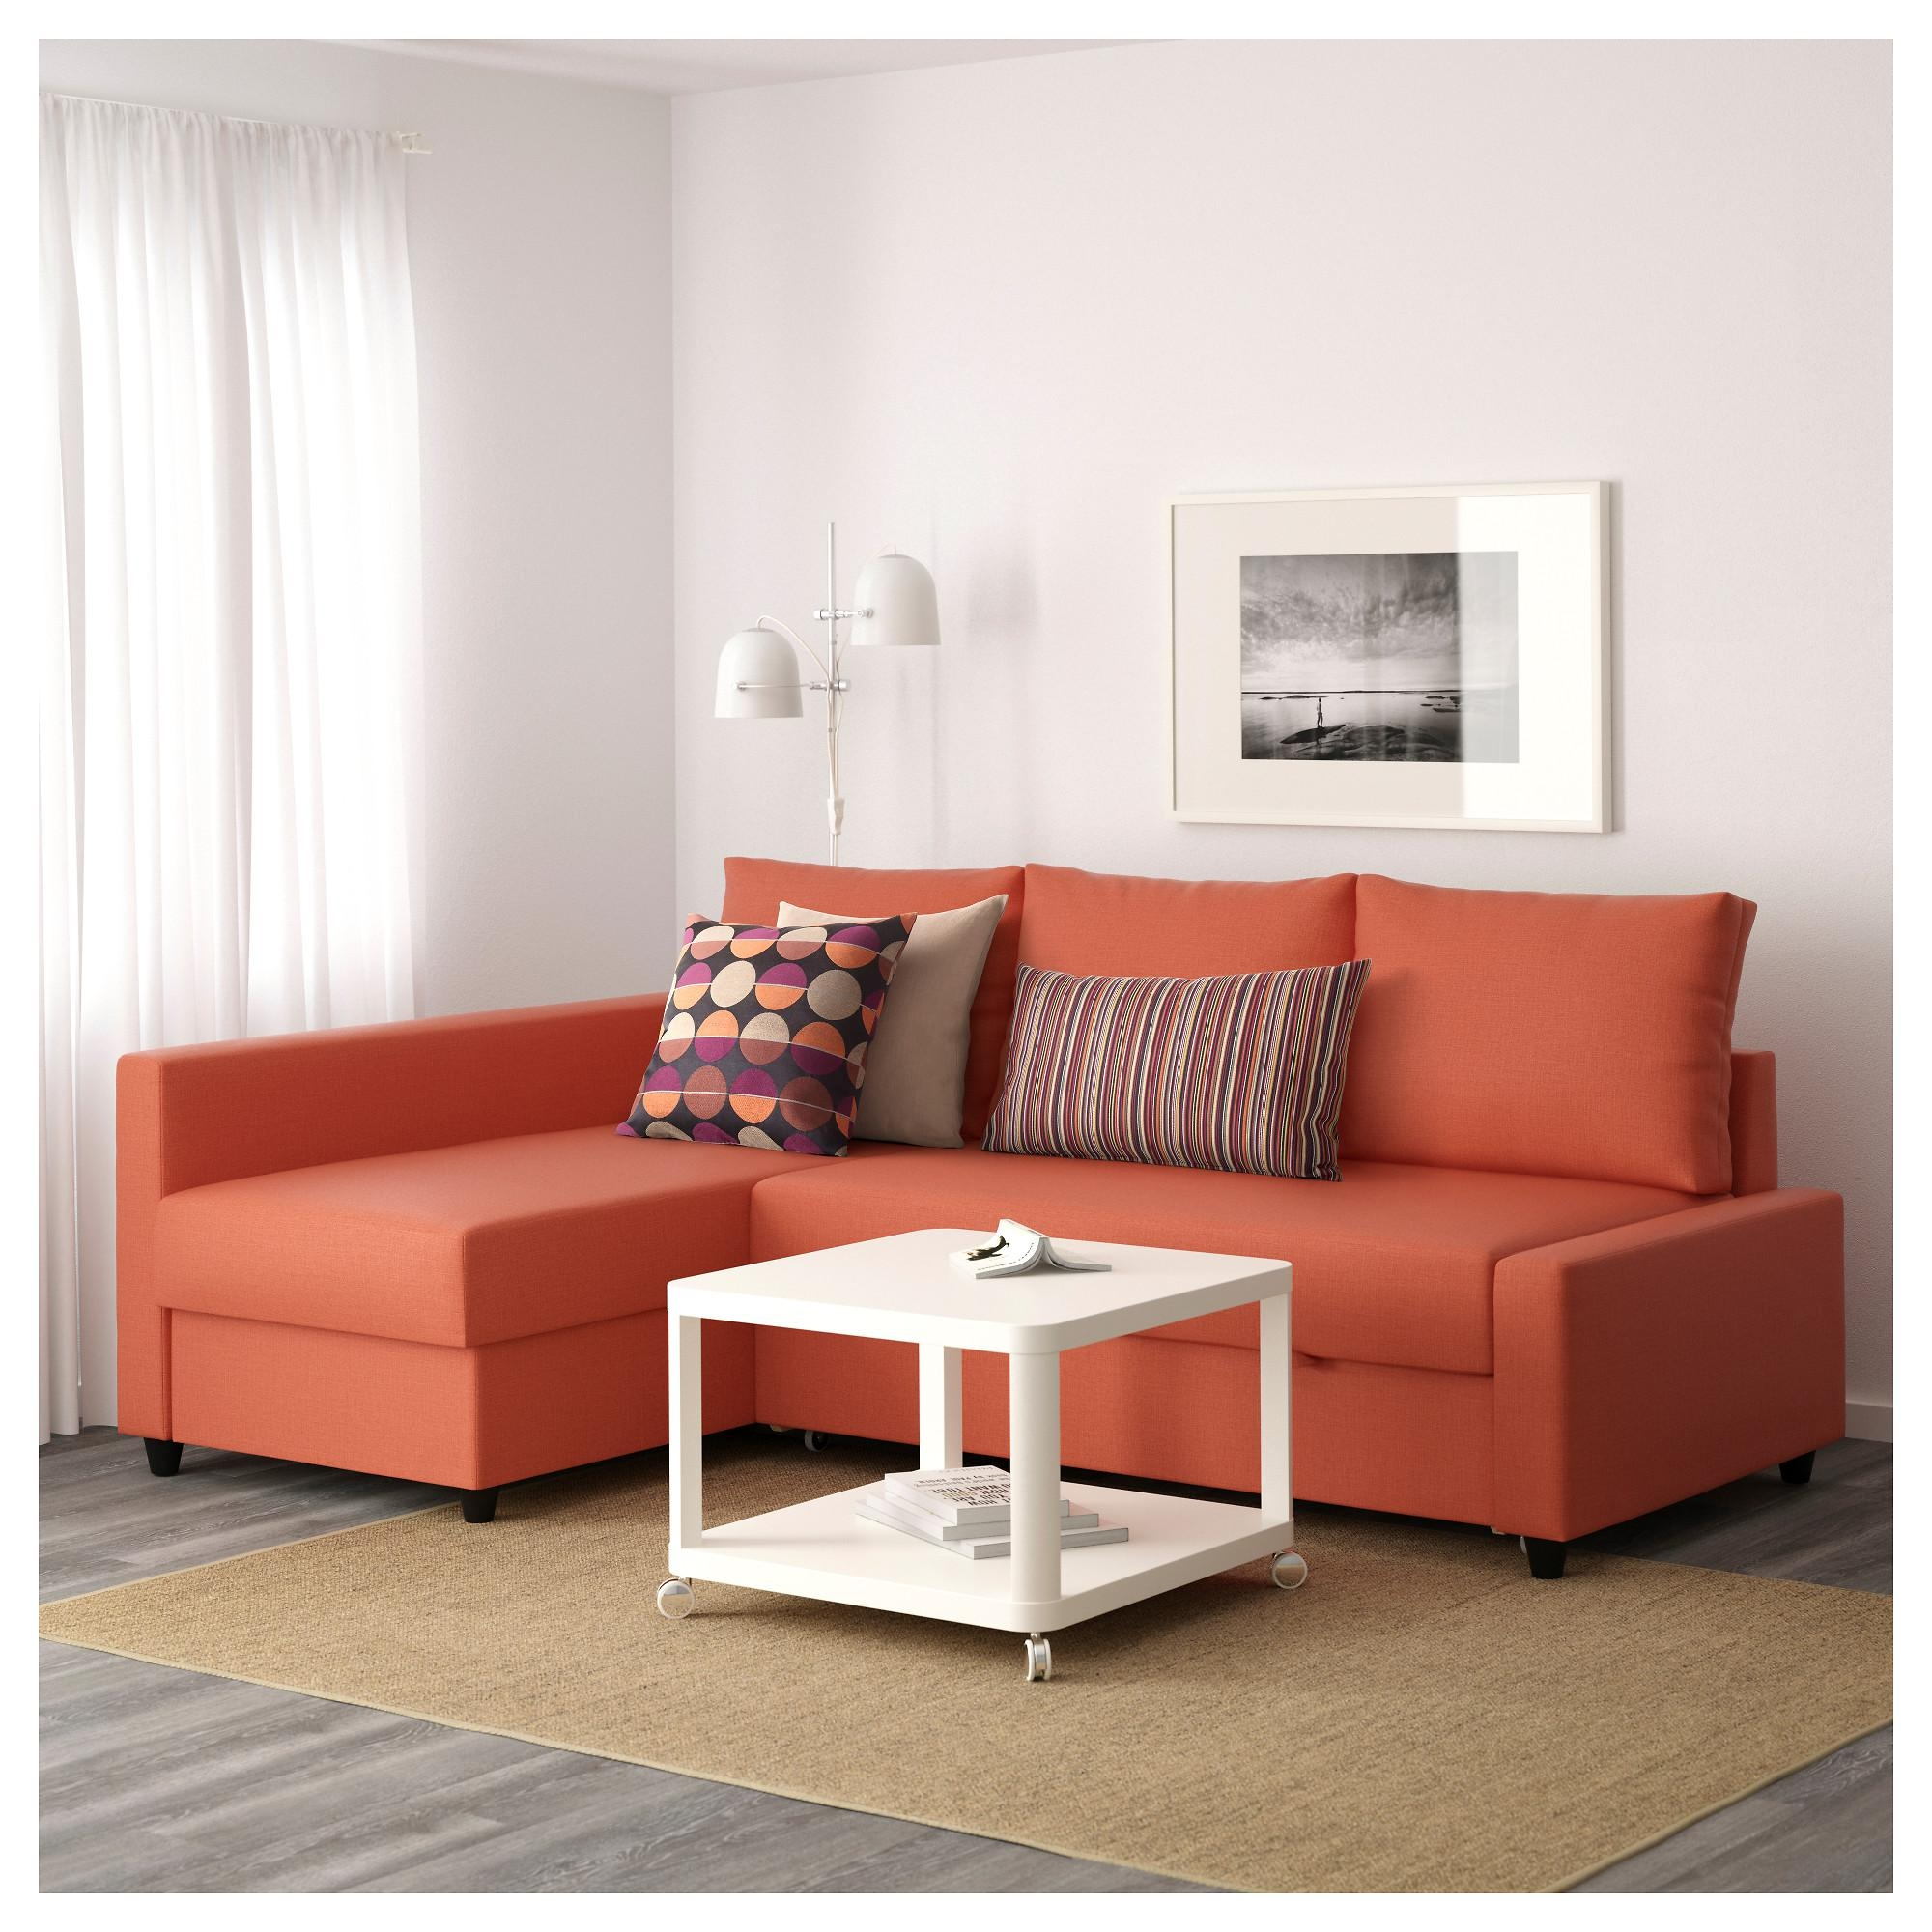 ikea sofa sleeper sectional dhp premium futon couch orange tylosand bed from apartment